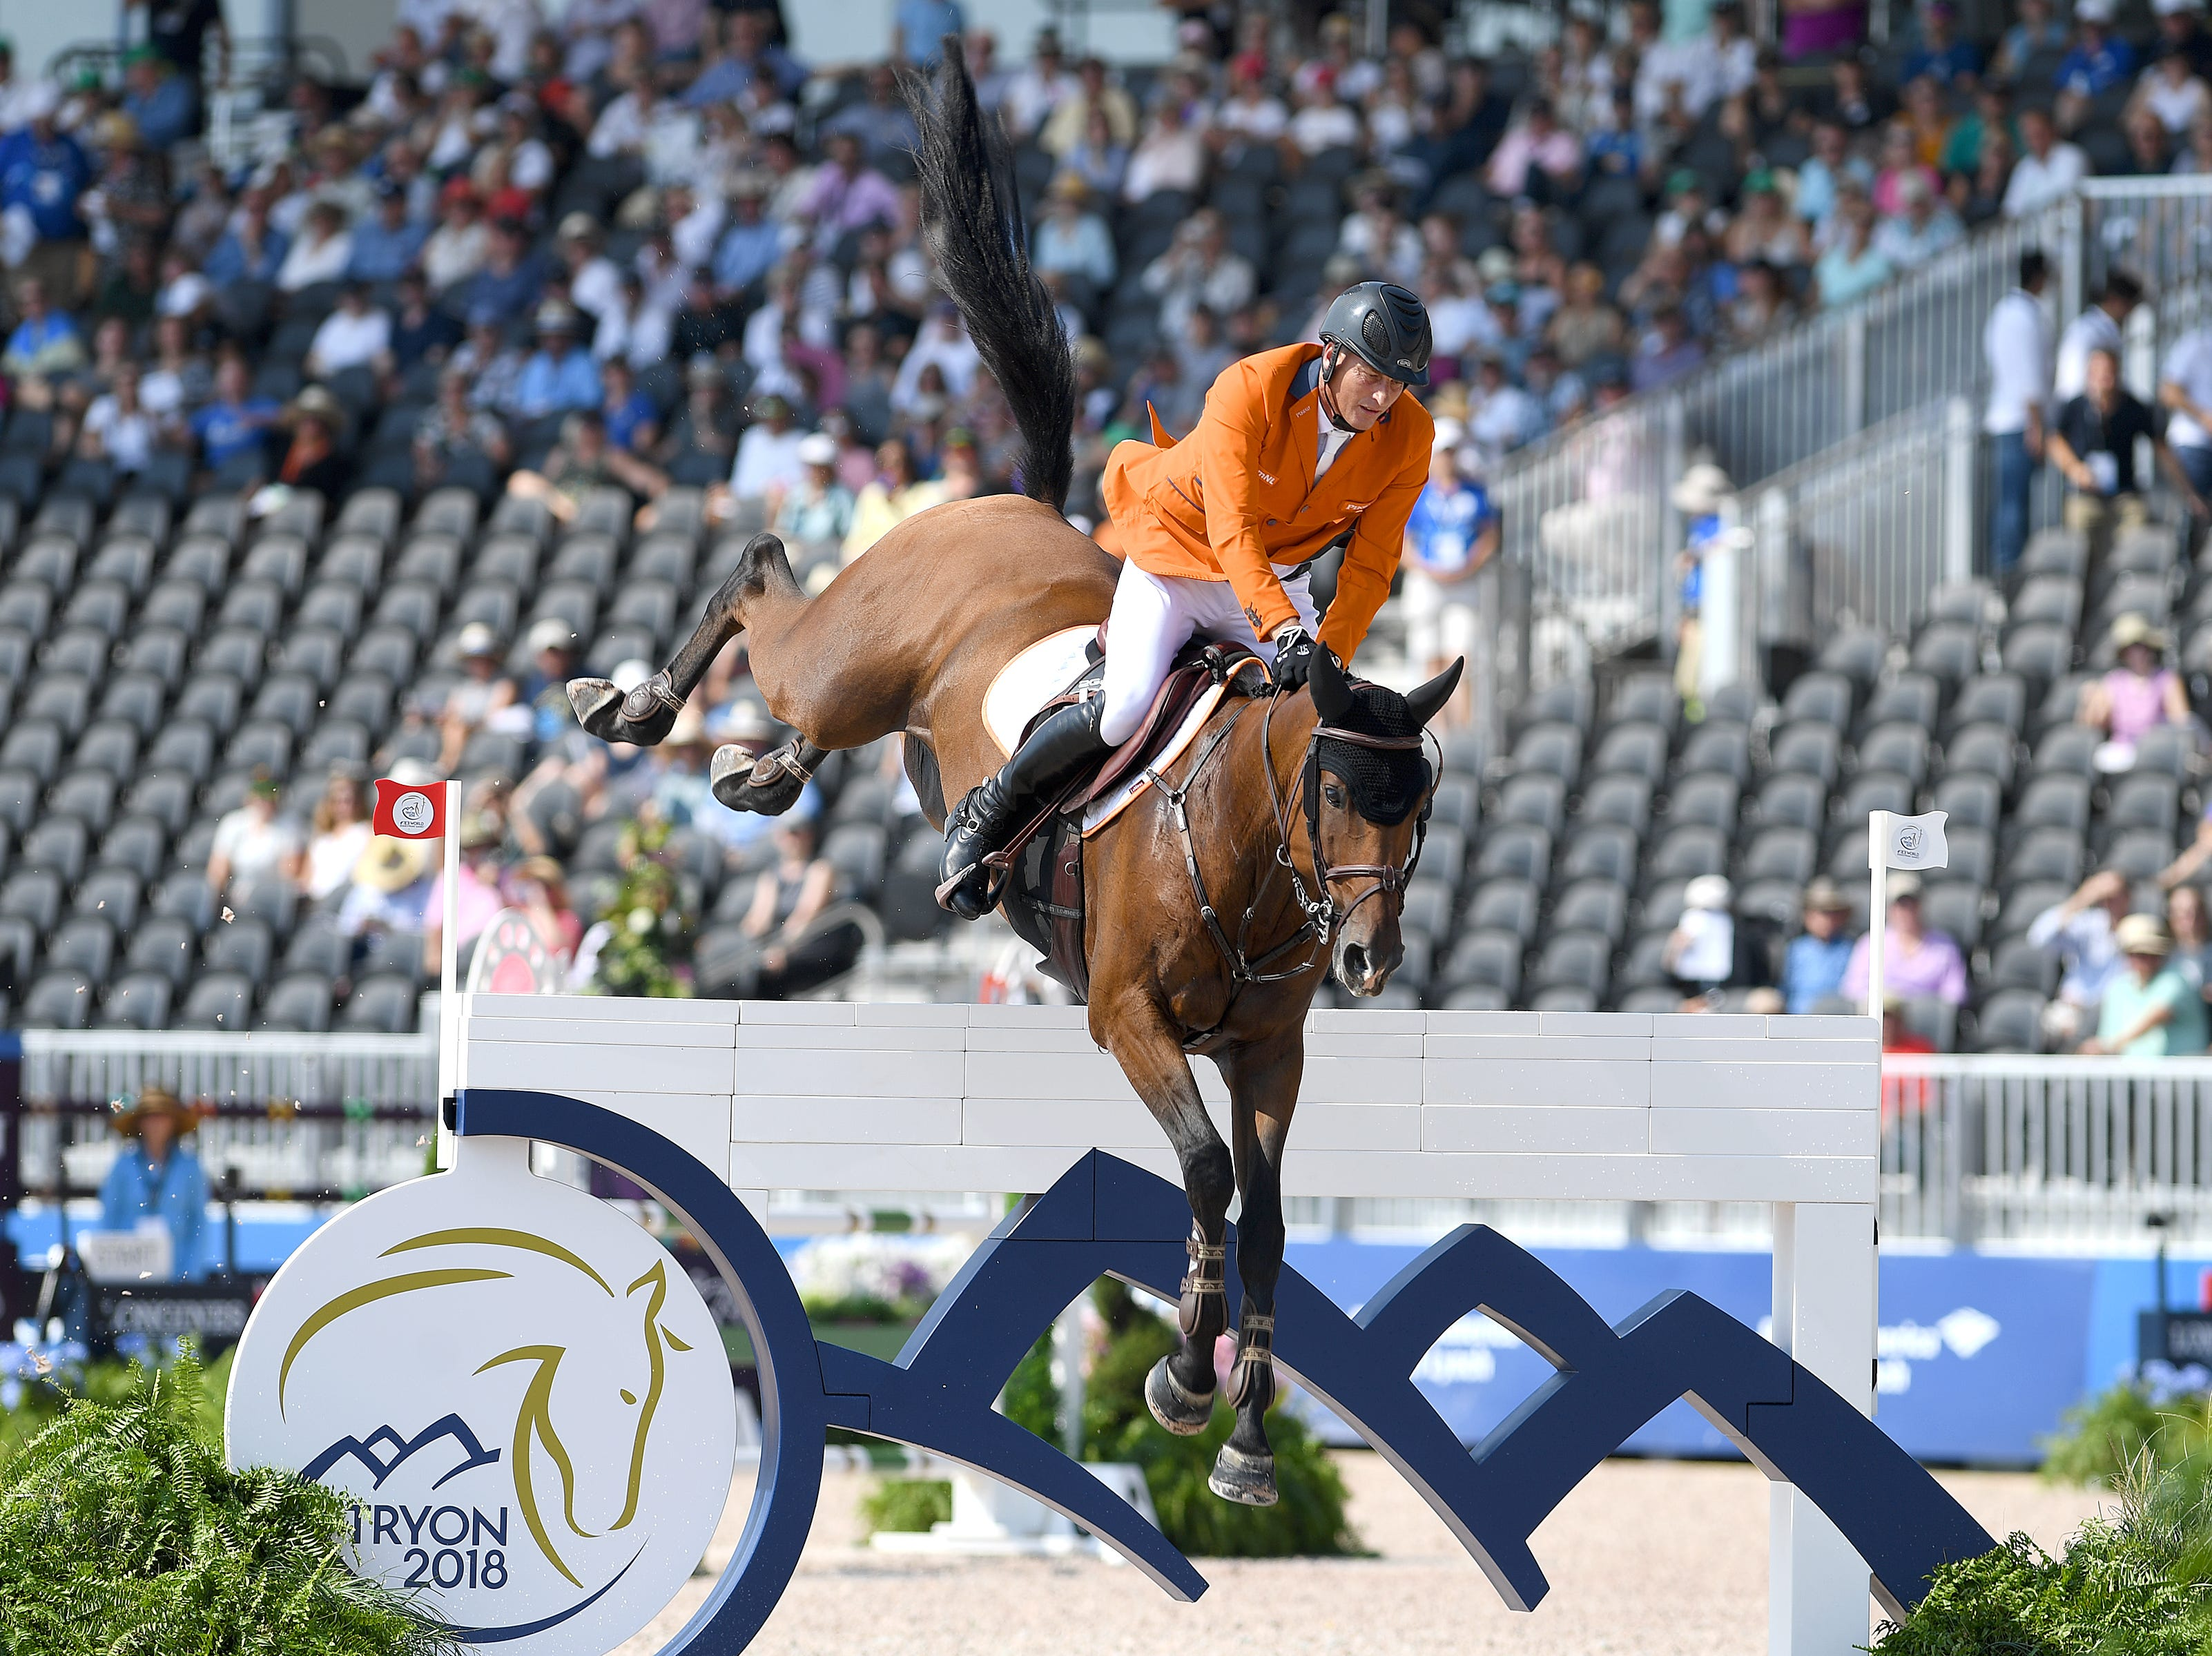 Marc Houtzager, of the Netherlands, on Sterrehof's Calimero, competes in the team jumping competition of the FEI World Equestrian Games at the Tryon International Equestrian Center on Sept. 20, 2018.